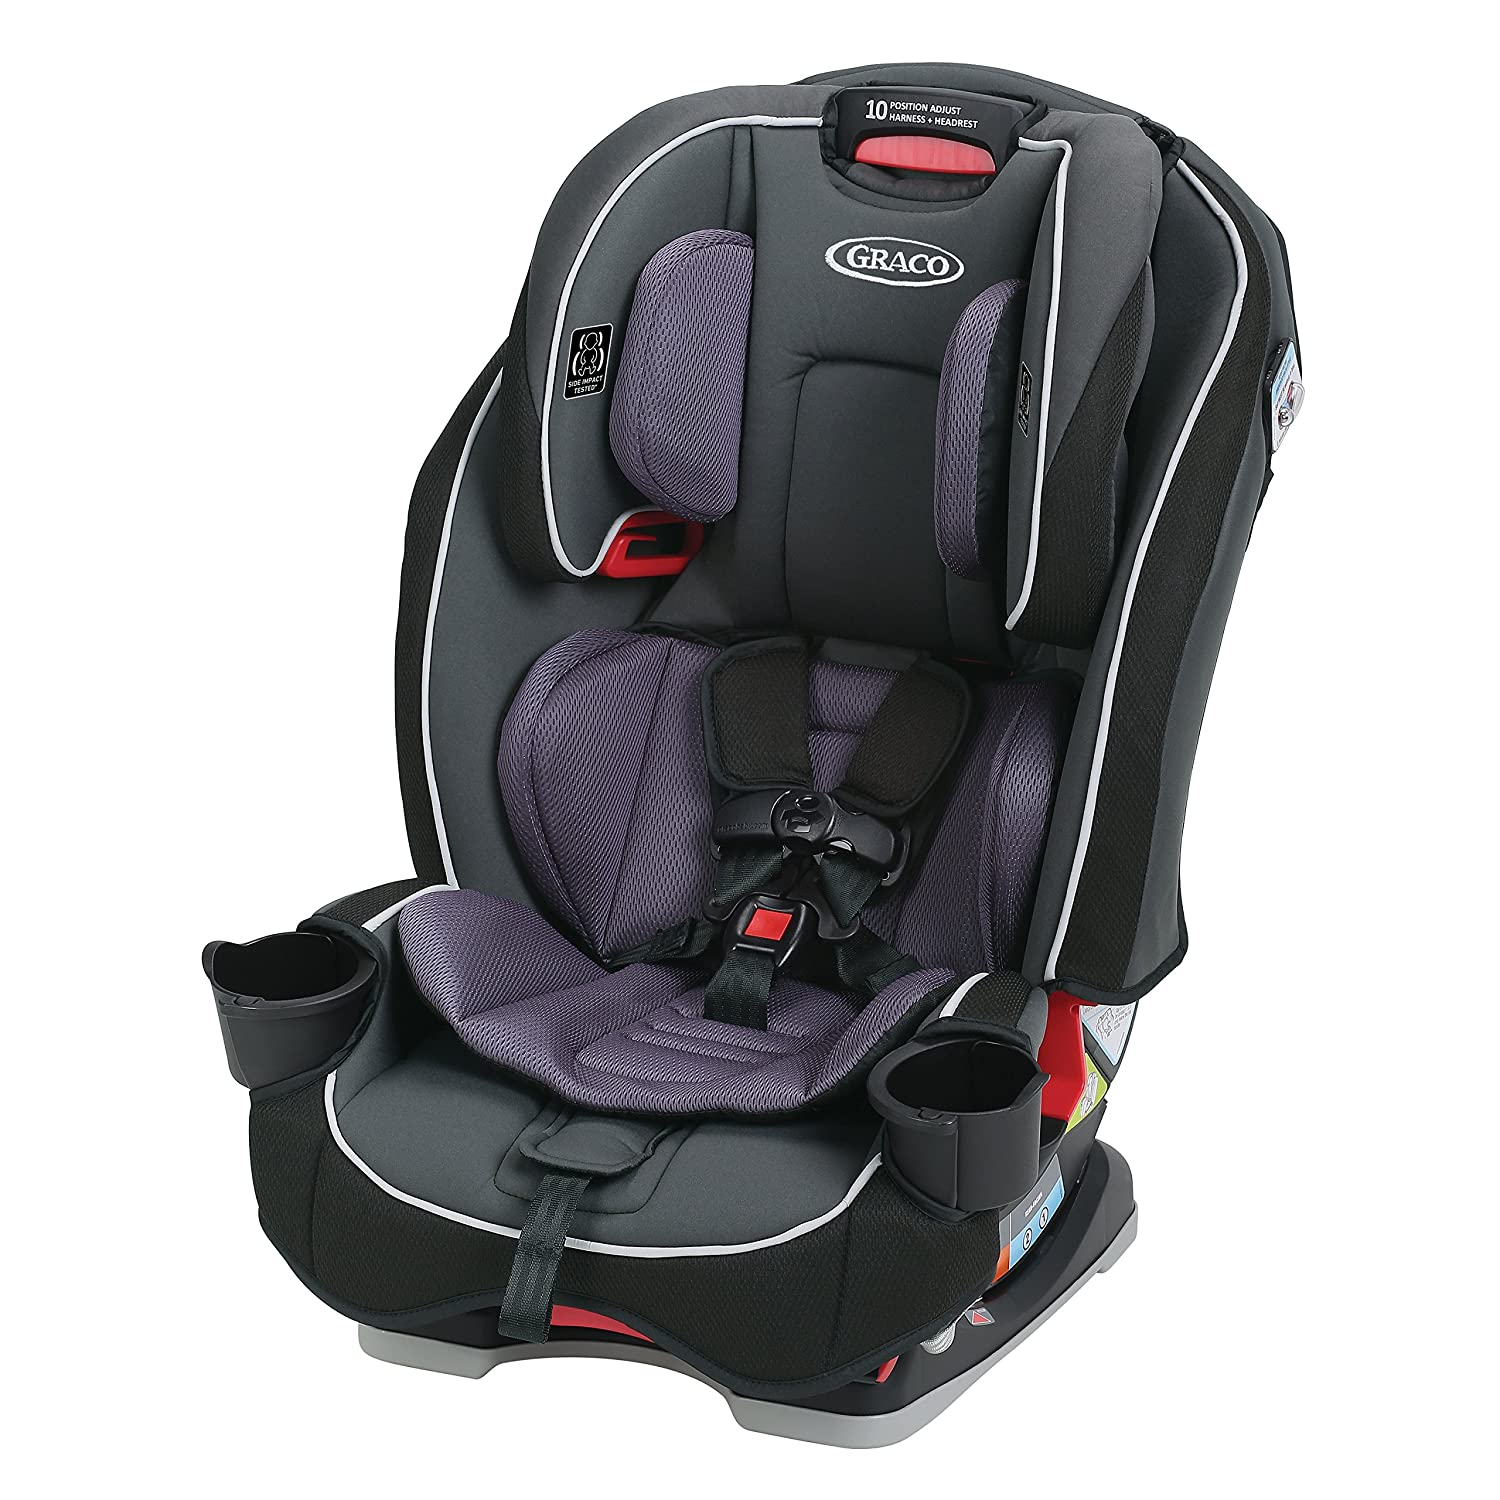 Graco SlimFit 3-In-1 Convertible Car Seat